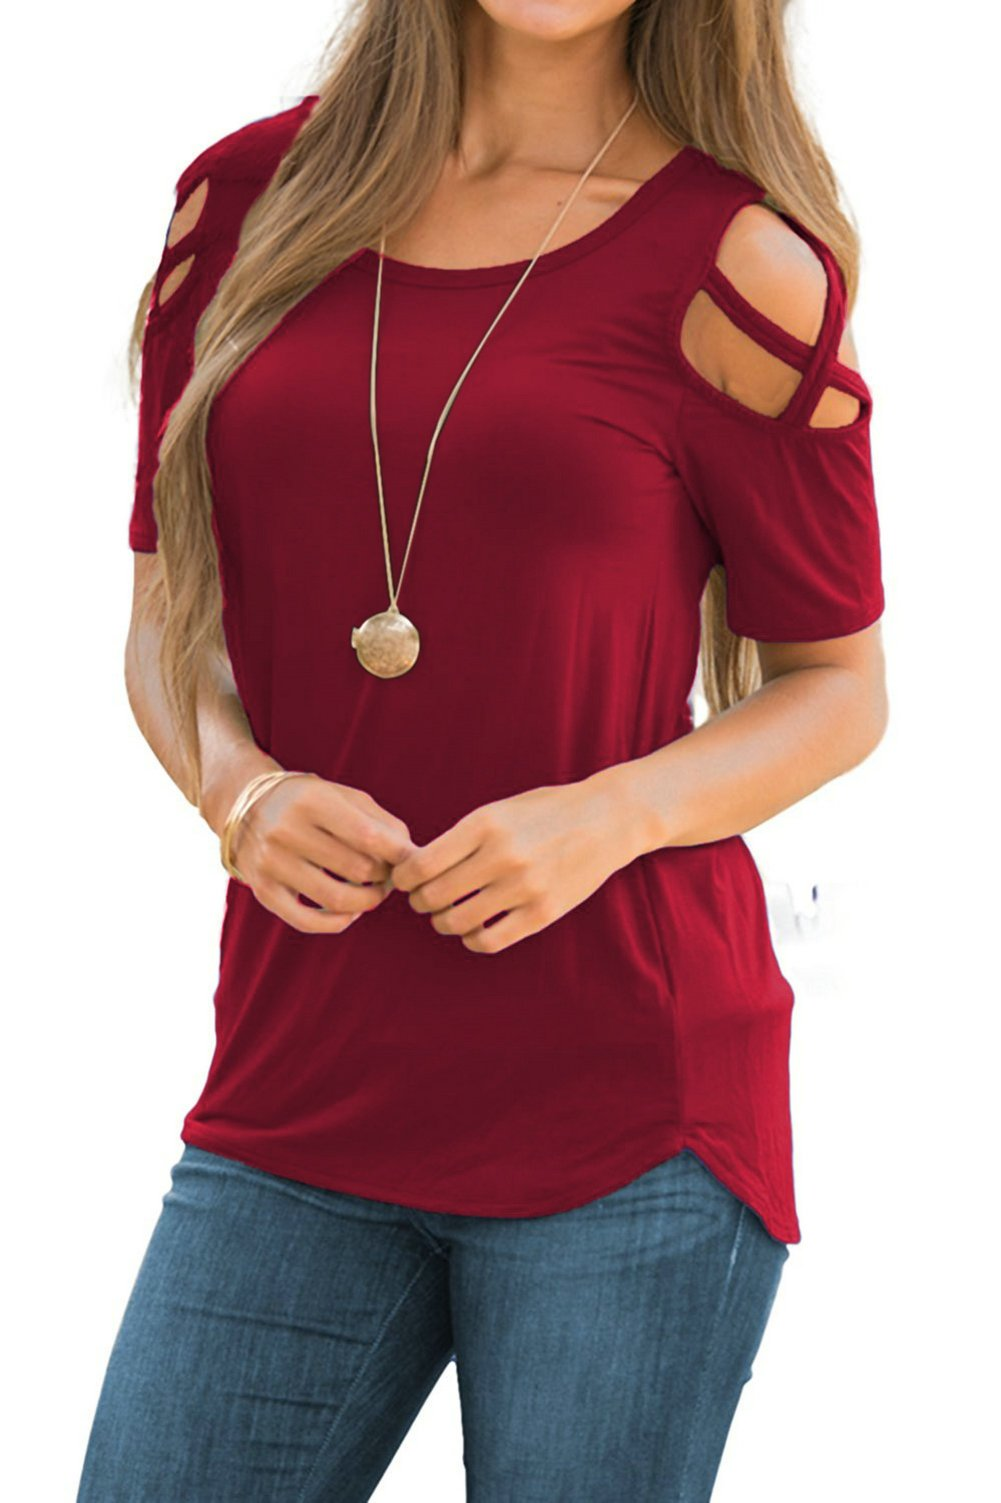 Doris Women's Casual Tunic Top Criss Cross Cold Shoulder Short Sleeve Strappy T-Shirt Tops Wine Red L